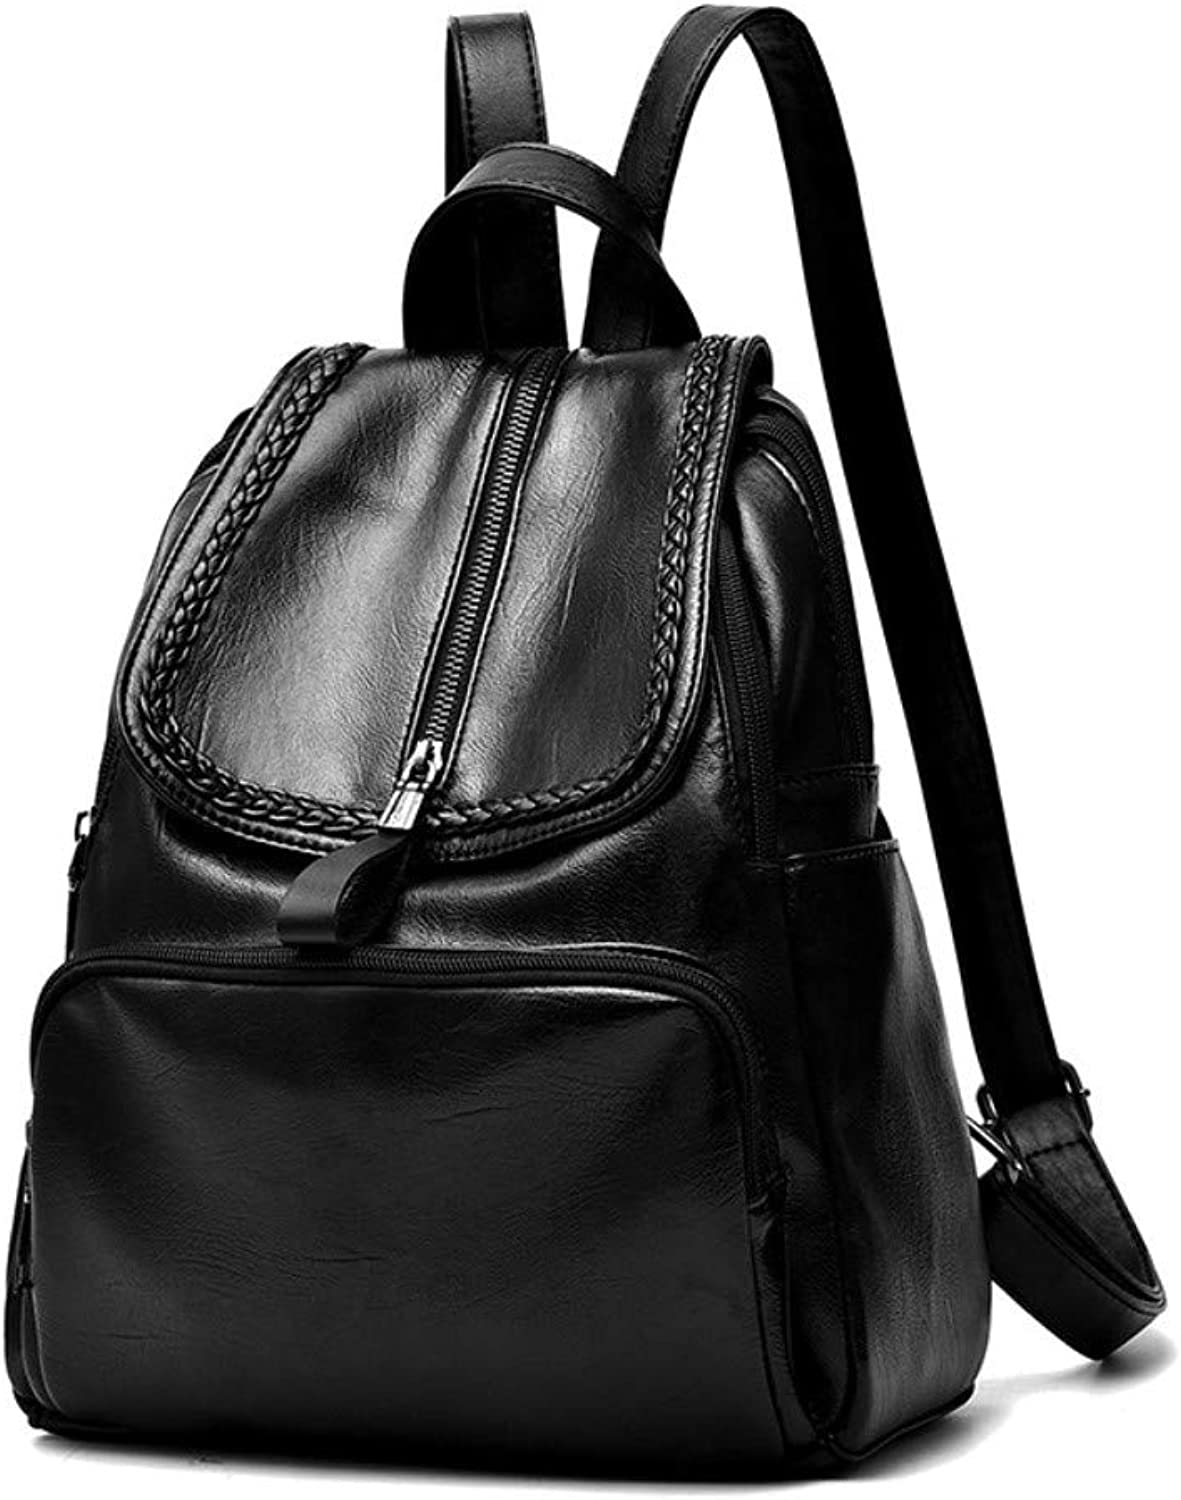 Z.H-H Wild Fashion, Small Fresh Lady Casual, Simple and Large-Capacity Personality Backpack pu Soft Leather